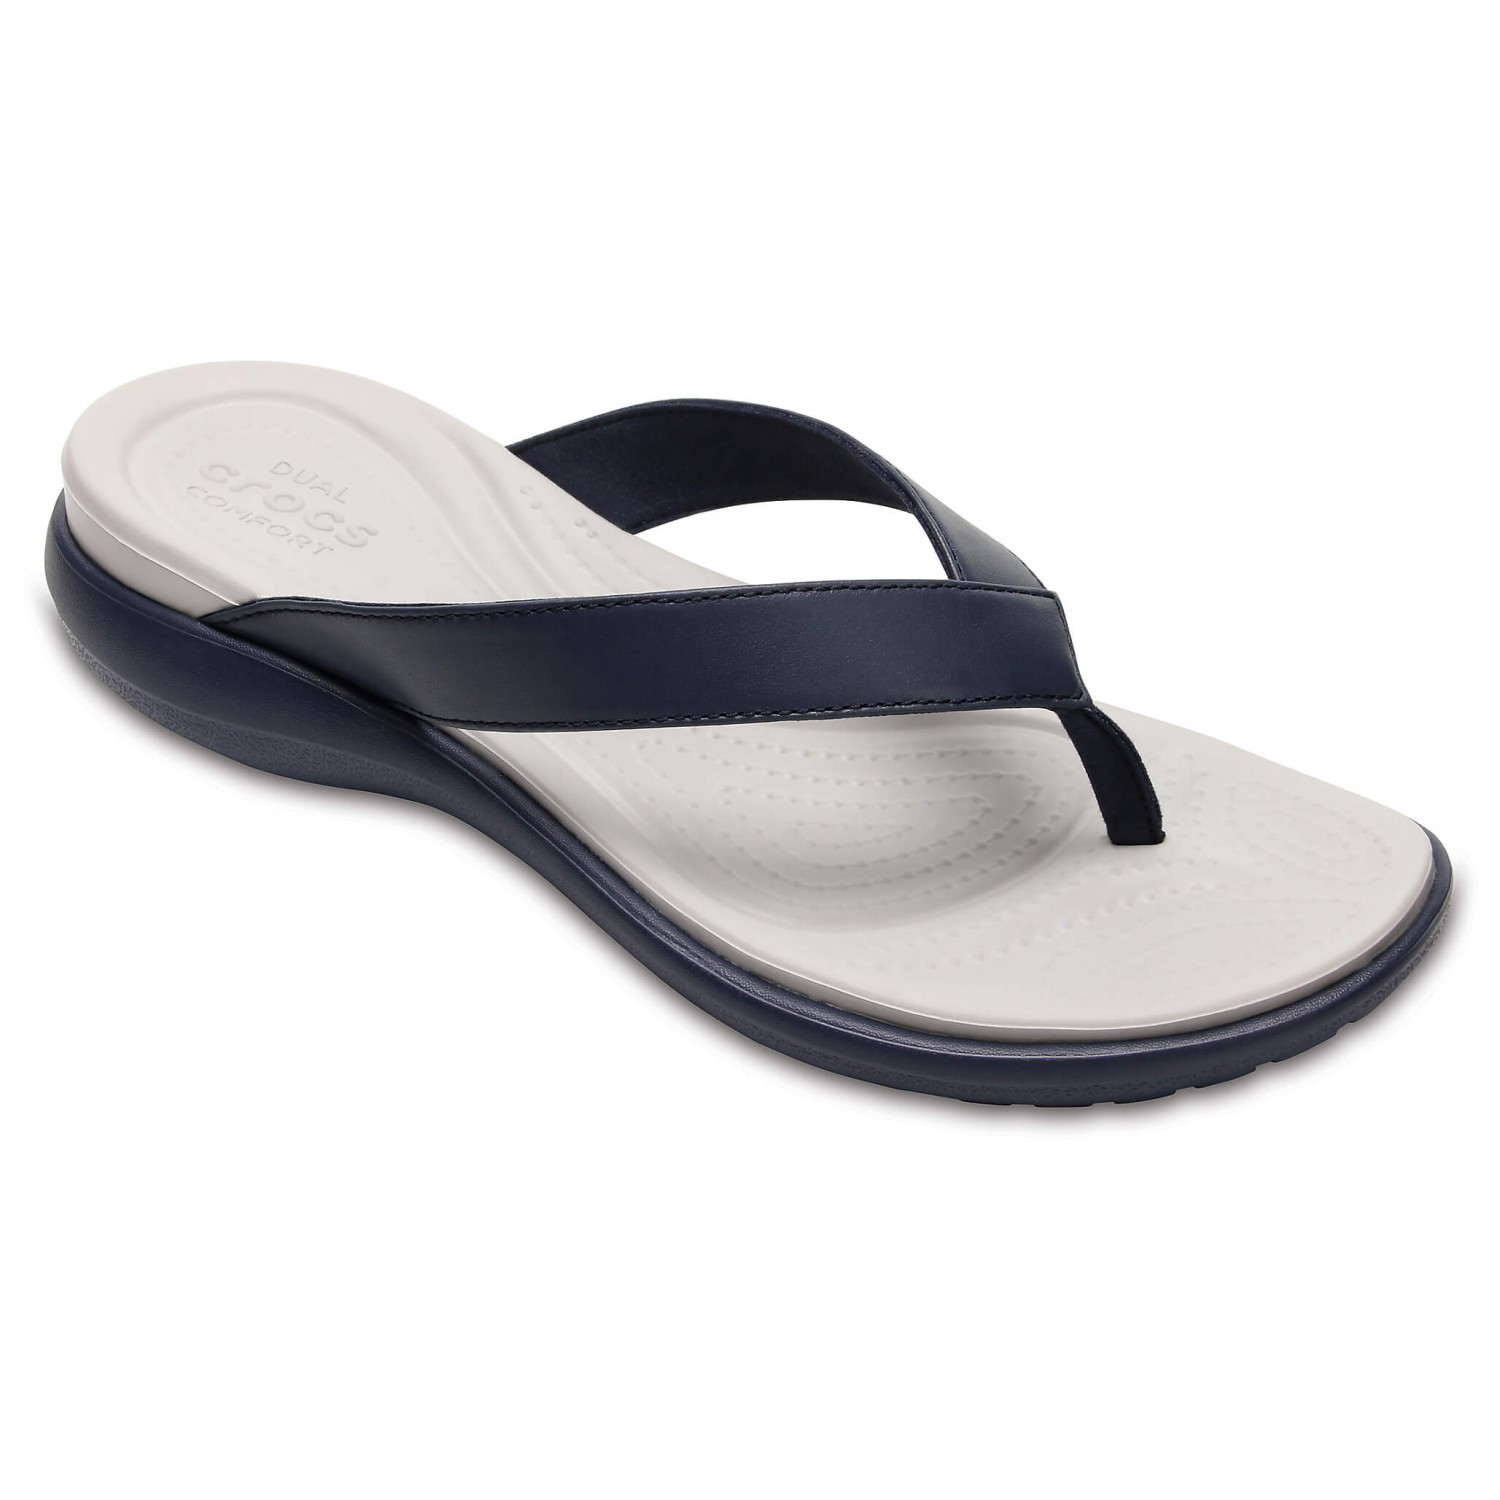 788b3819ae15 Crocs - Women s Capri V Flip - Sandals